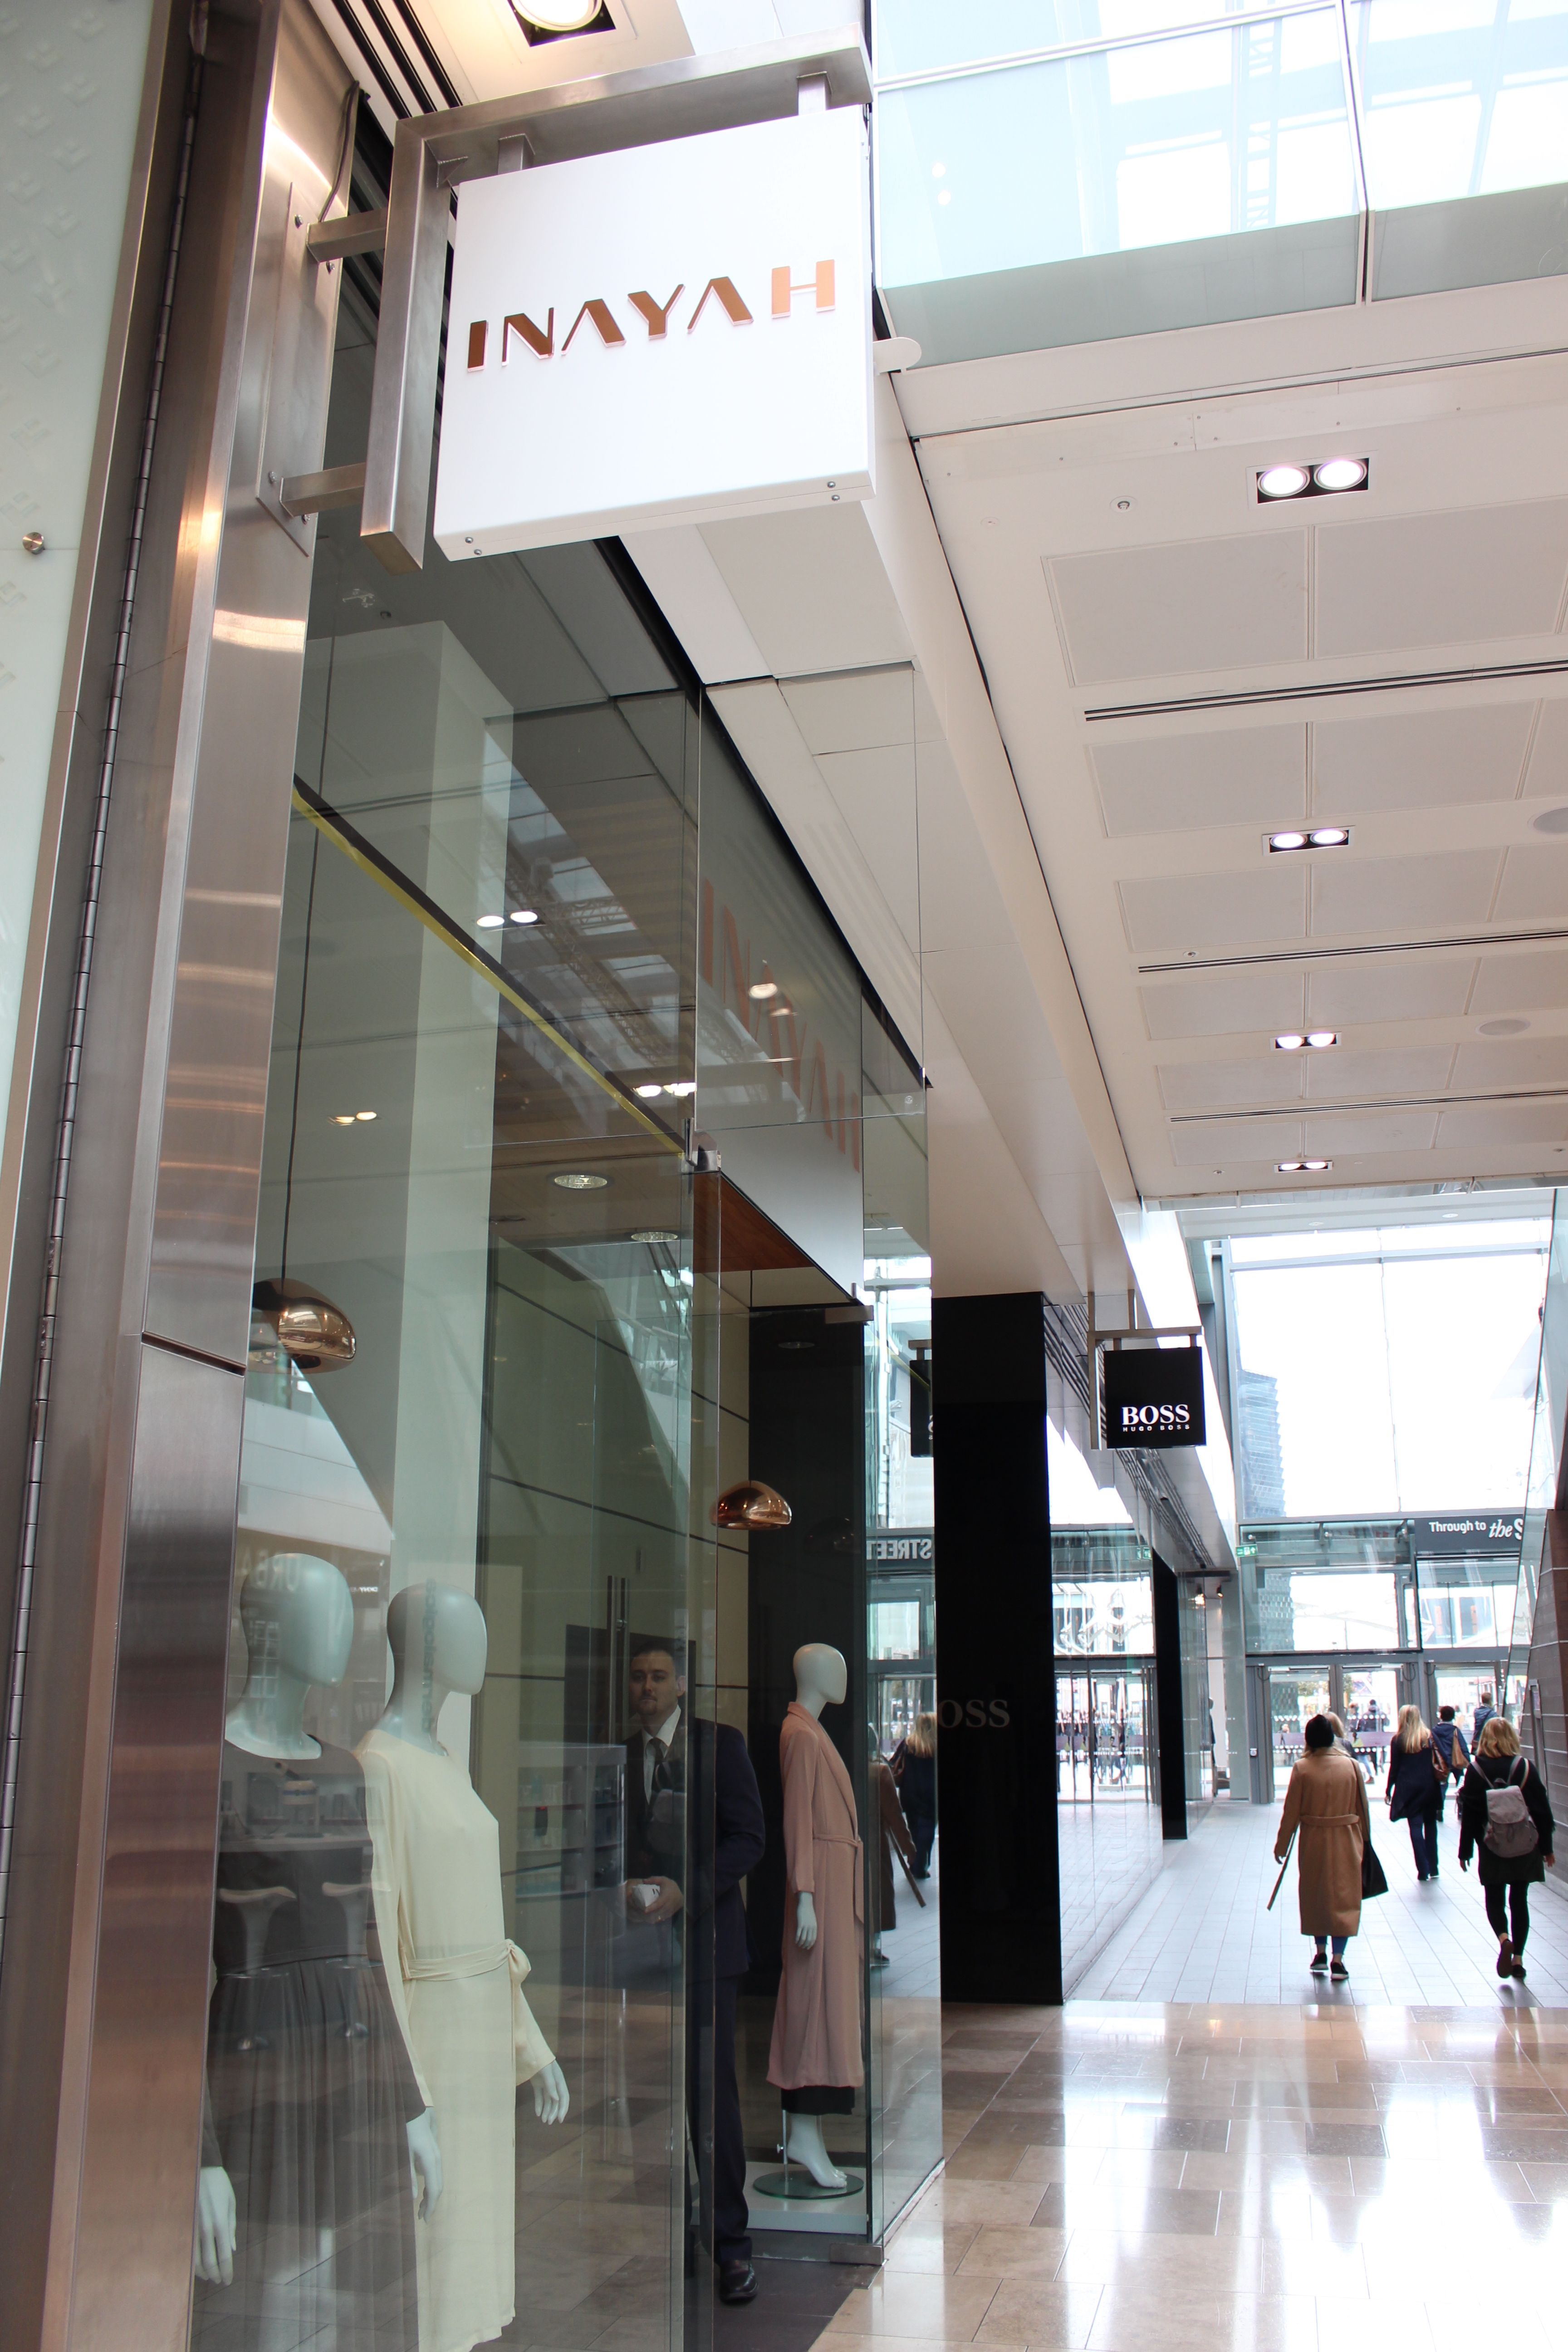 8a65b2e613559 INAYAH | We are located on the Ground Floor of Westfield, Stratford City,  adjacent to Lacoste & Hugo Boss and opposite MAC Cosmetics. Come and find  us!